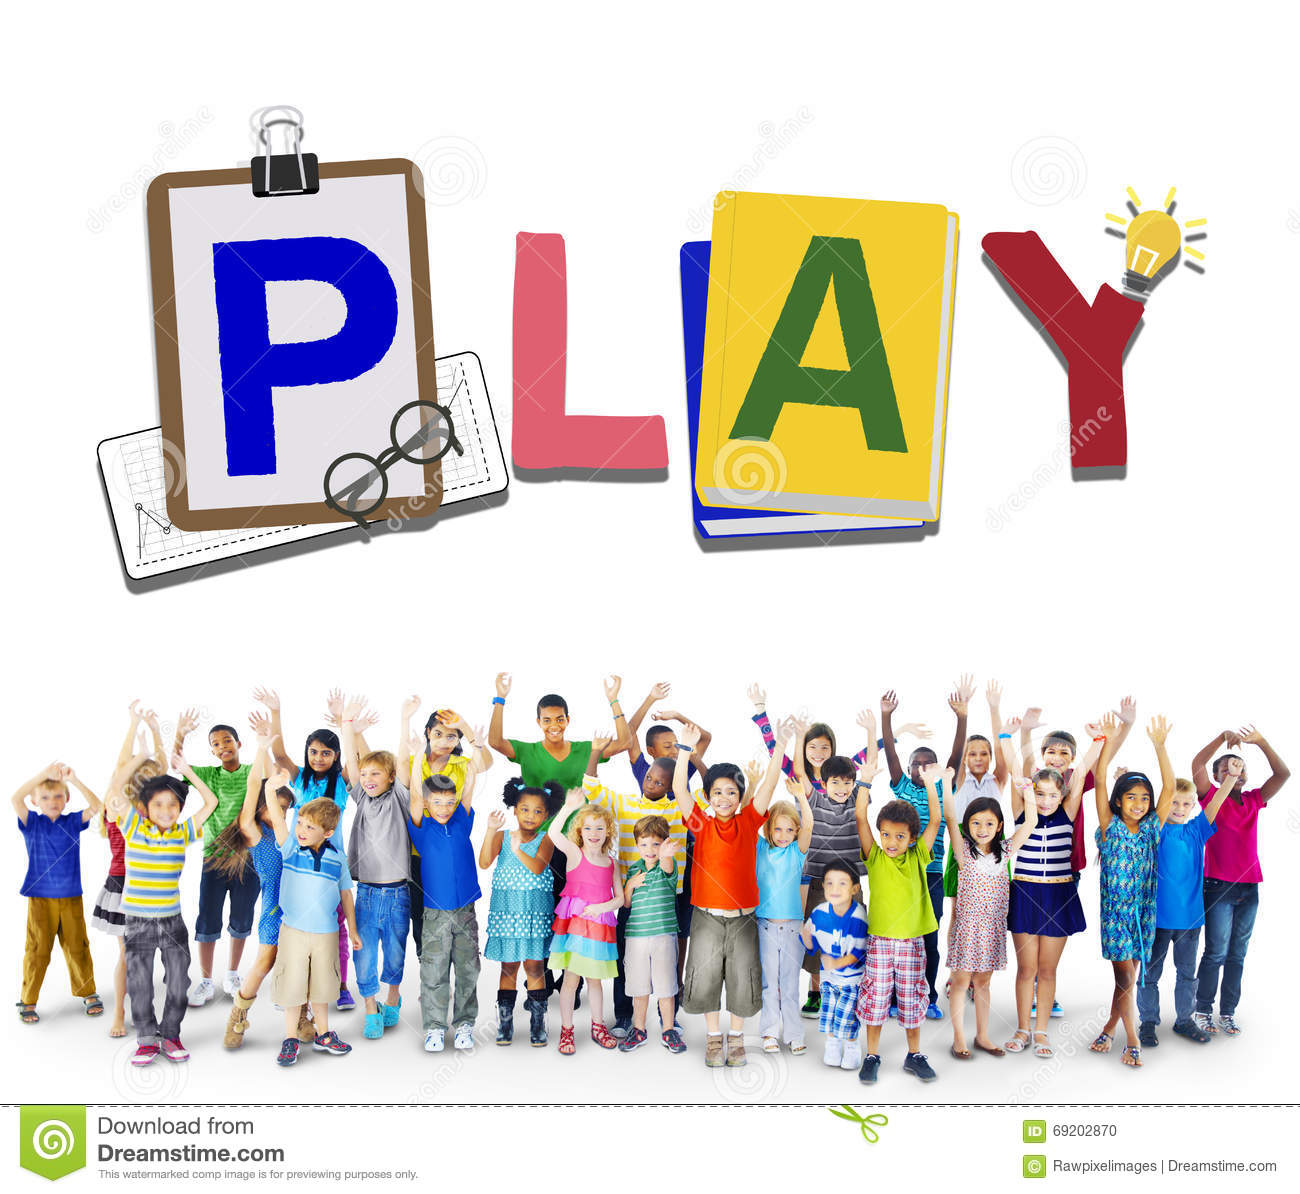 Play Leisure Activity Recreation Entertainment Playing Concept Stock Illustration